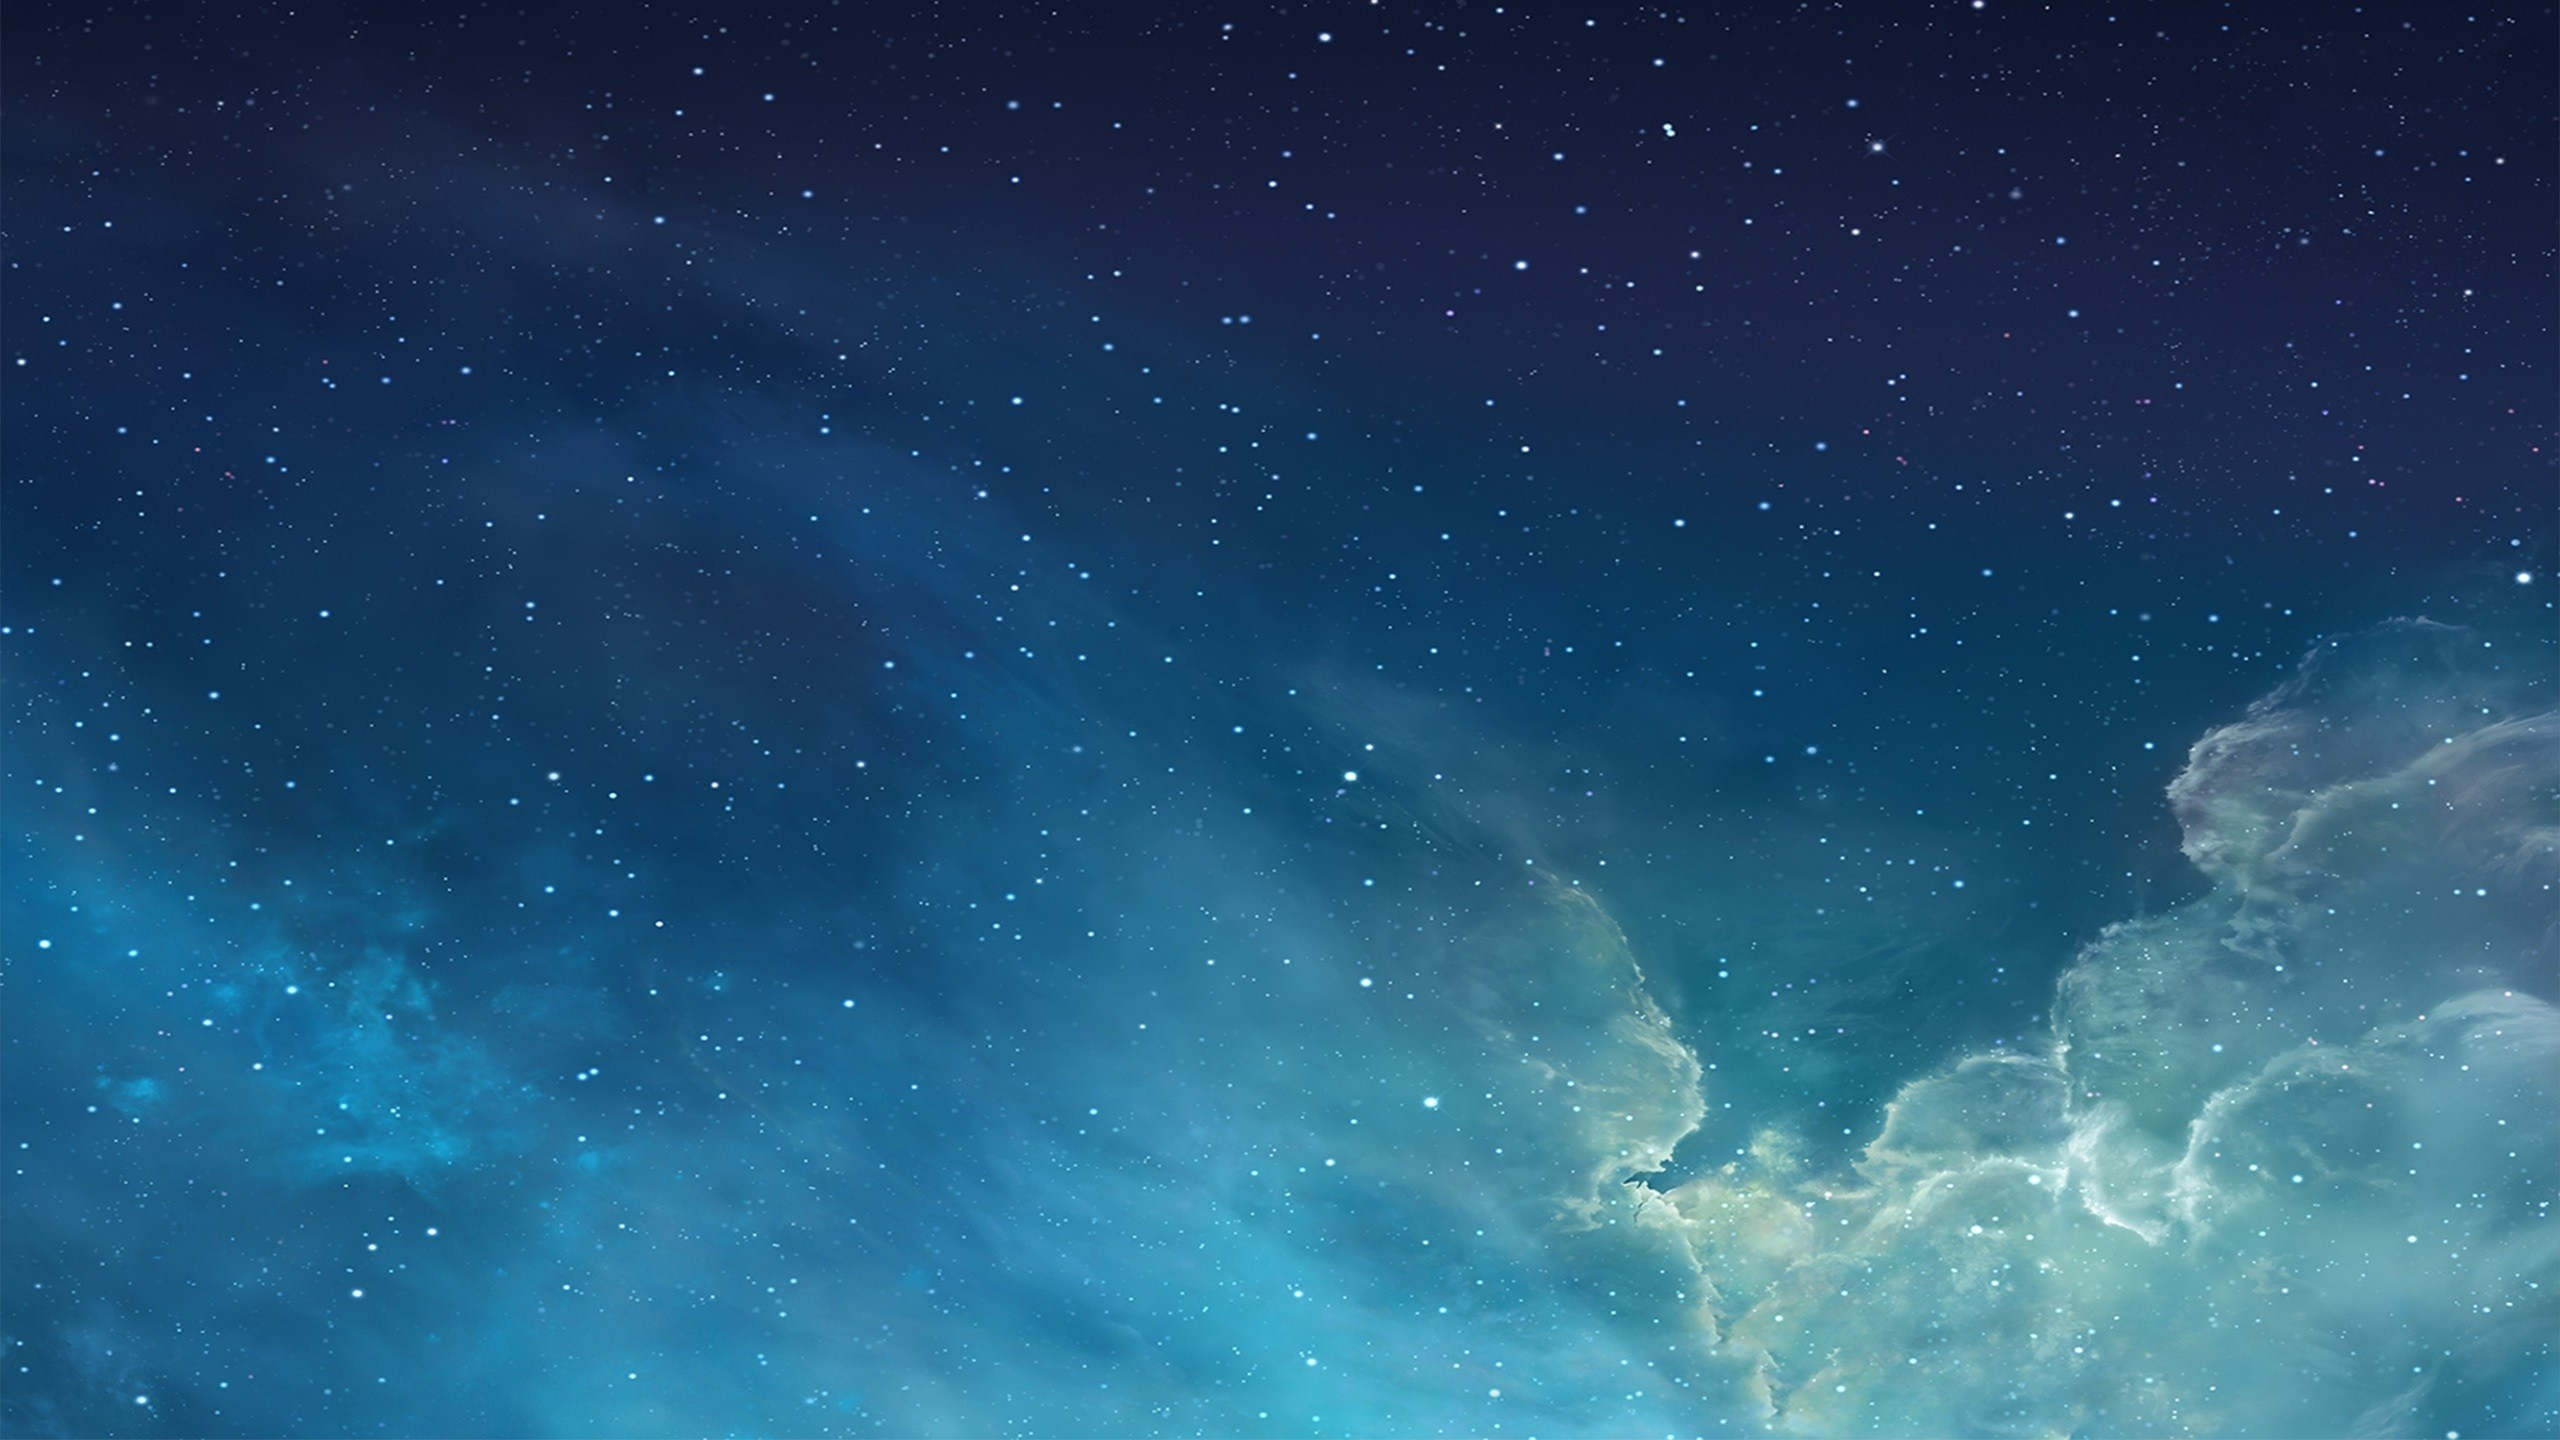 Res: 2560x1440, Adorable Full HD 1080p Mac Background, 232132961  px